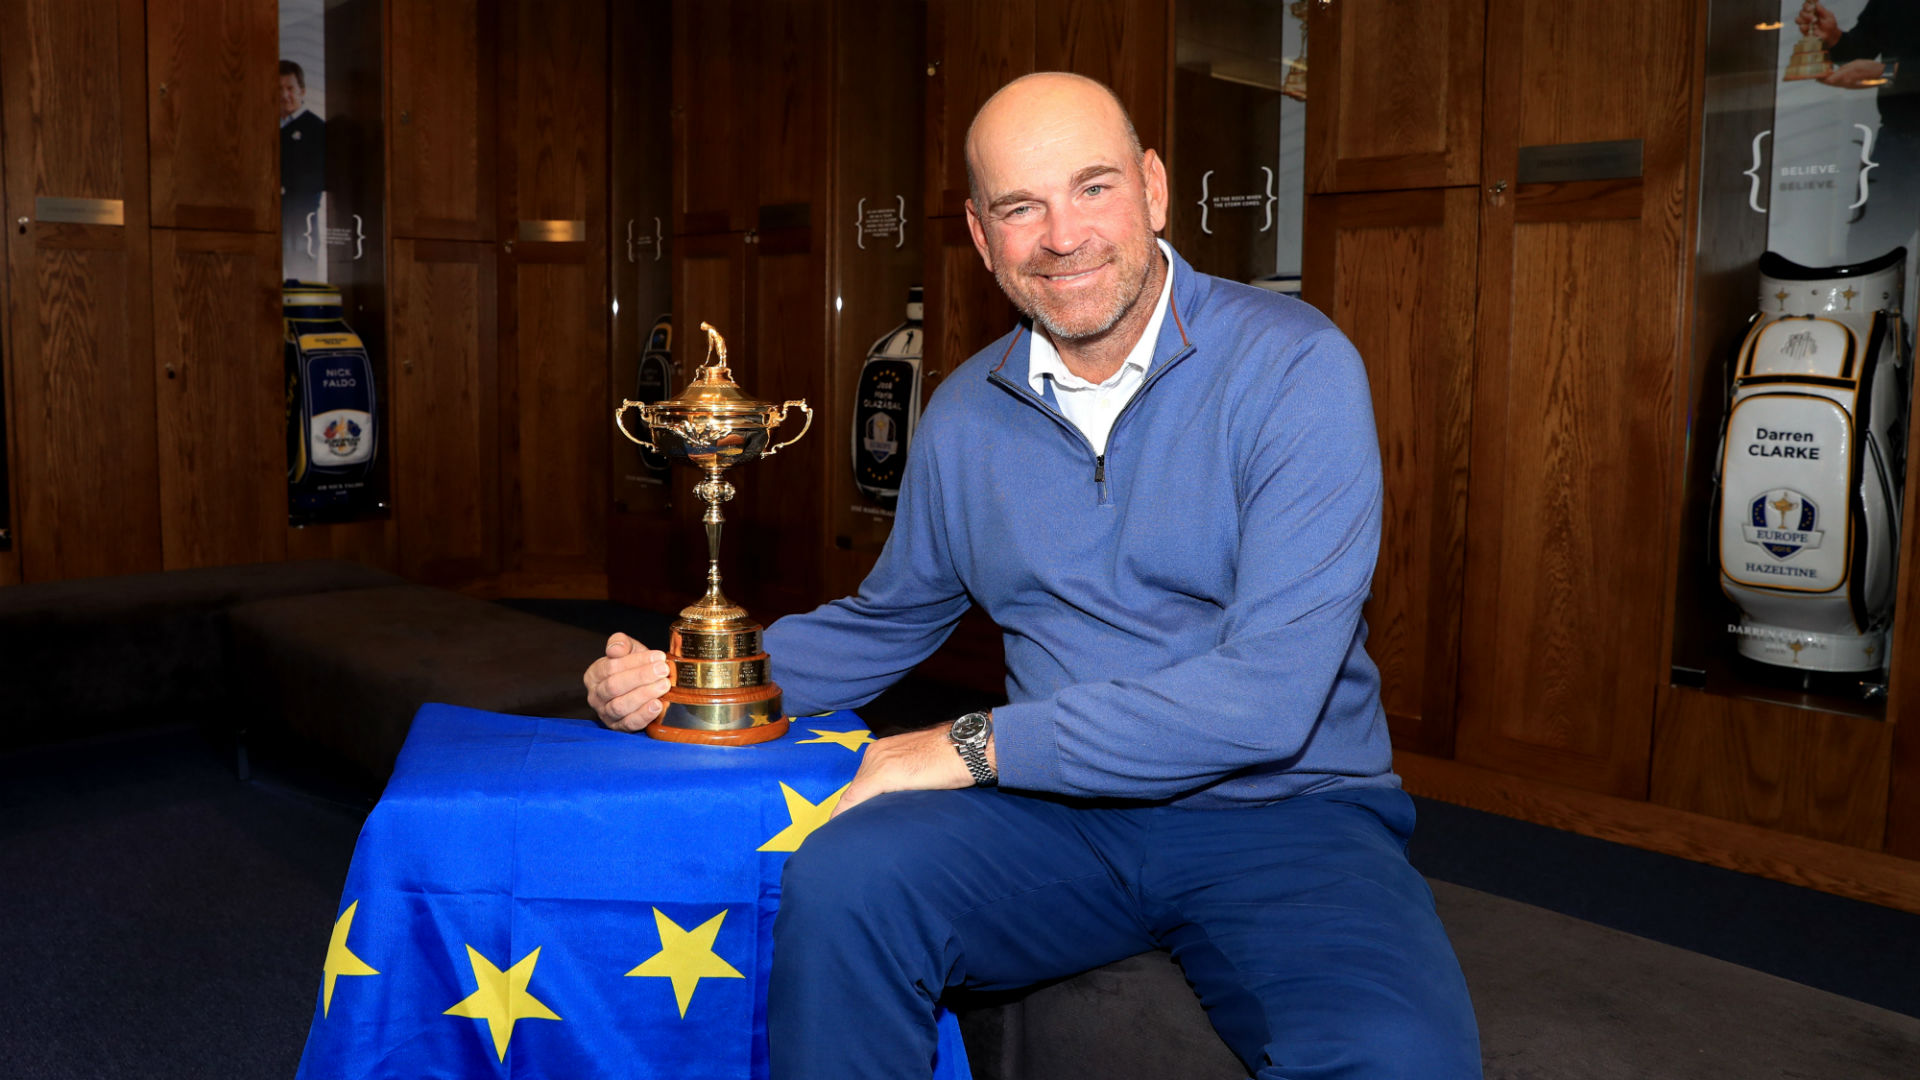 Thomas Bjorn appointed to board of the European Tour